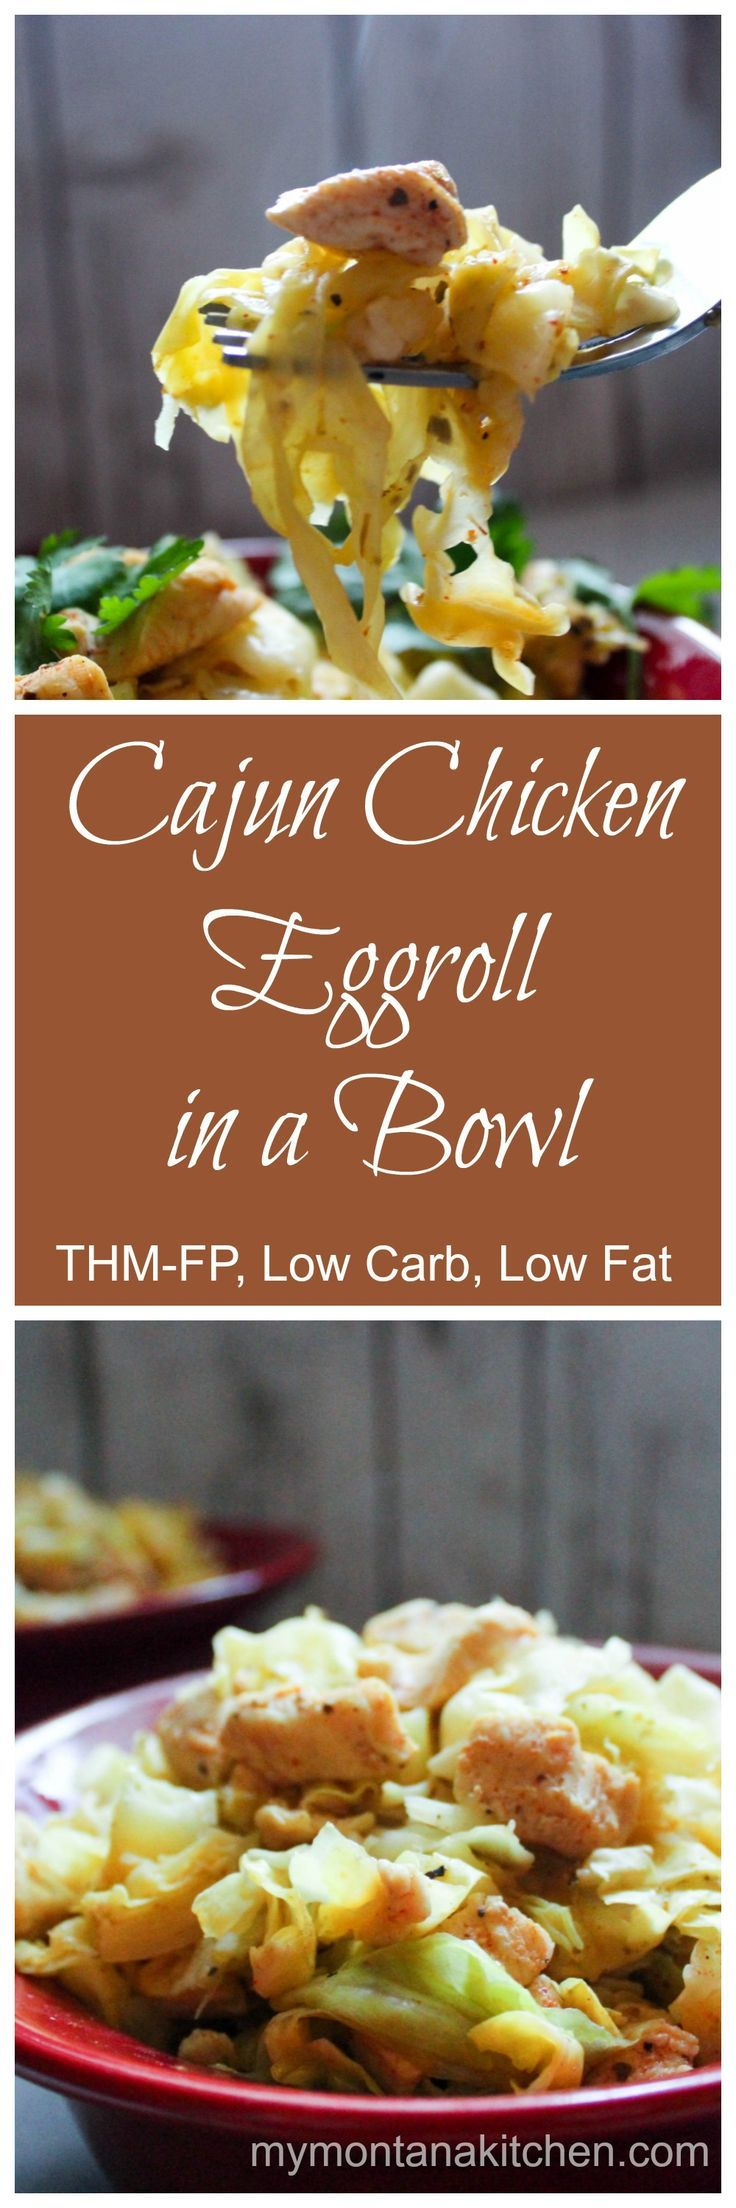 Cajun Chicken Eggroll in a Bowl (THM-FP, Low Carb) #eggrollinabowl